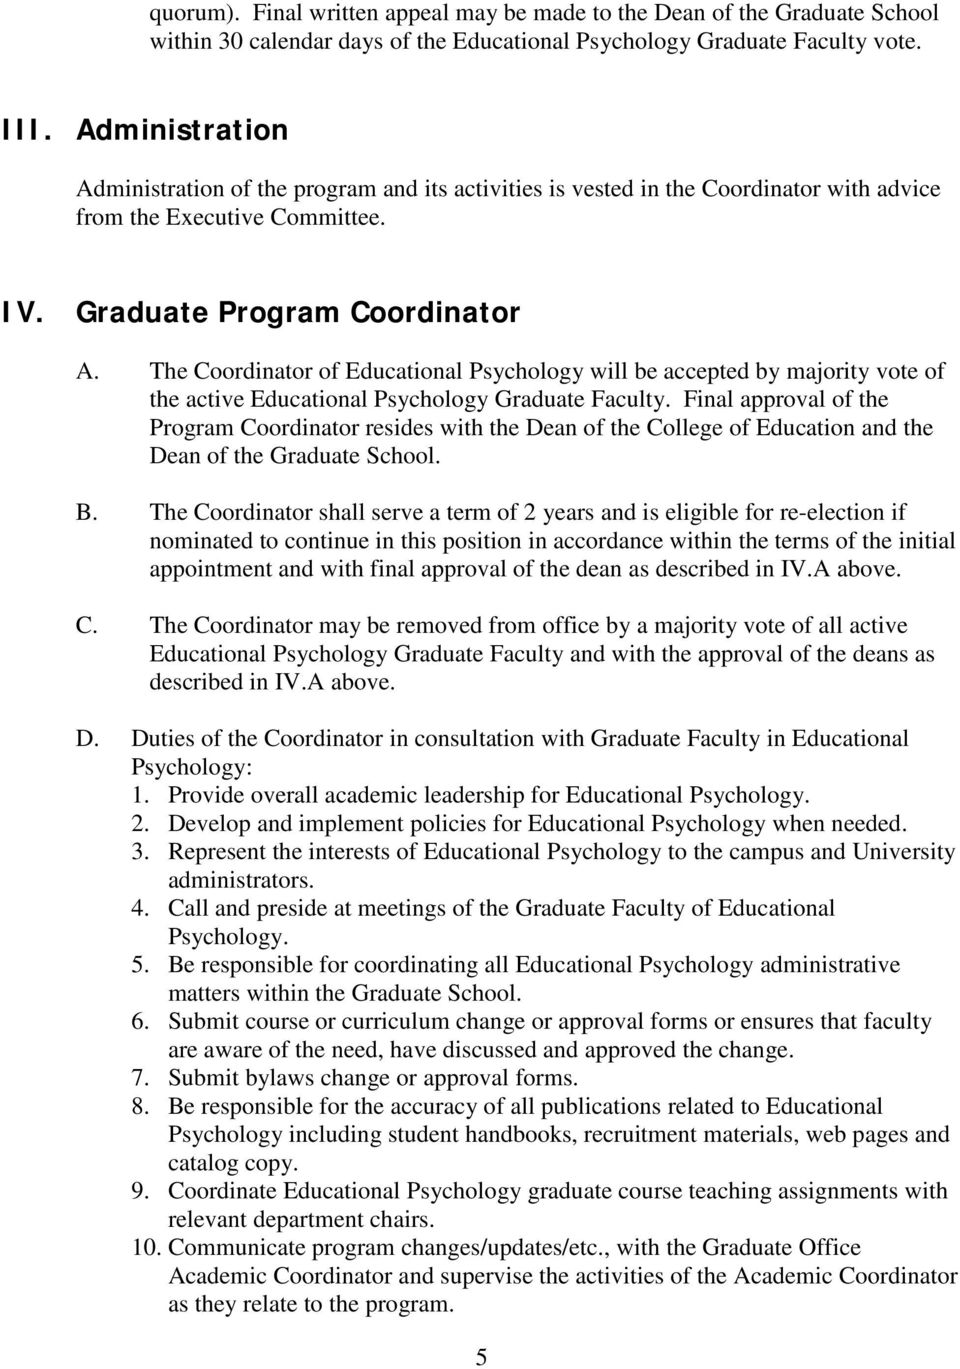 The Coordinator of Educational Psychology will be accepted by majority vote of the active Educational Psychology Graduate Faculty.